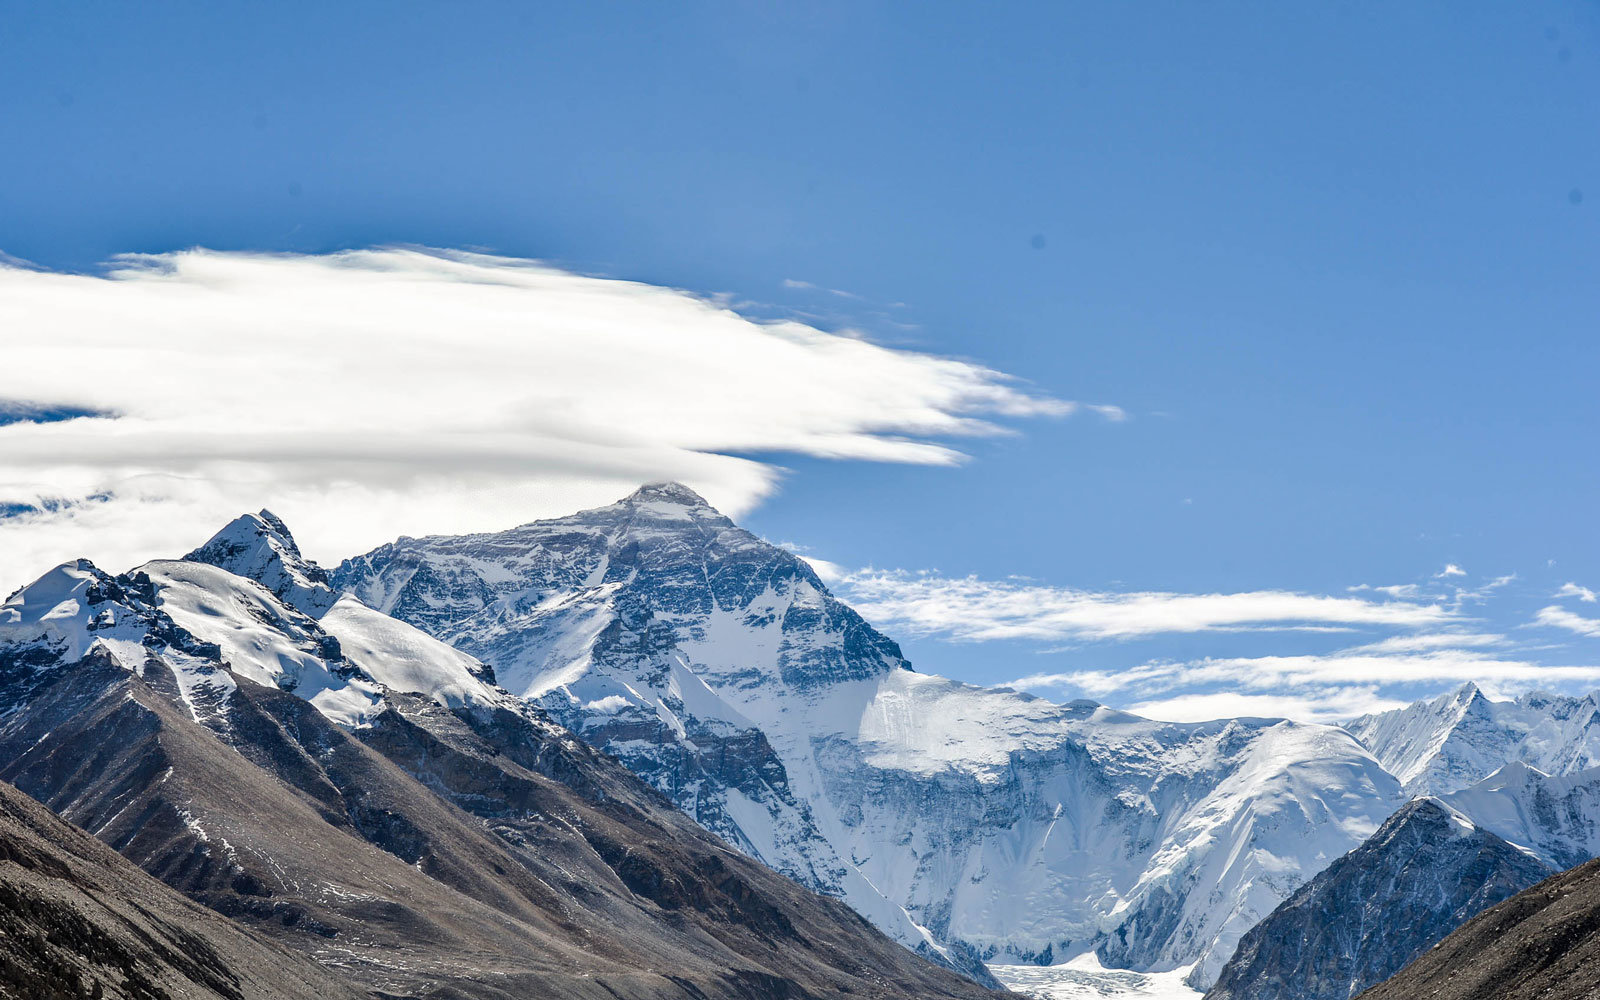 Tragedy at 29,000 Feet: The 10 Worst Disasters on Everest